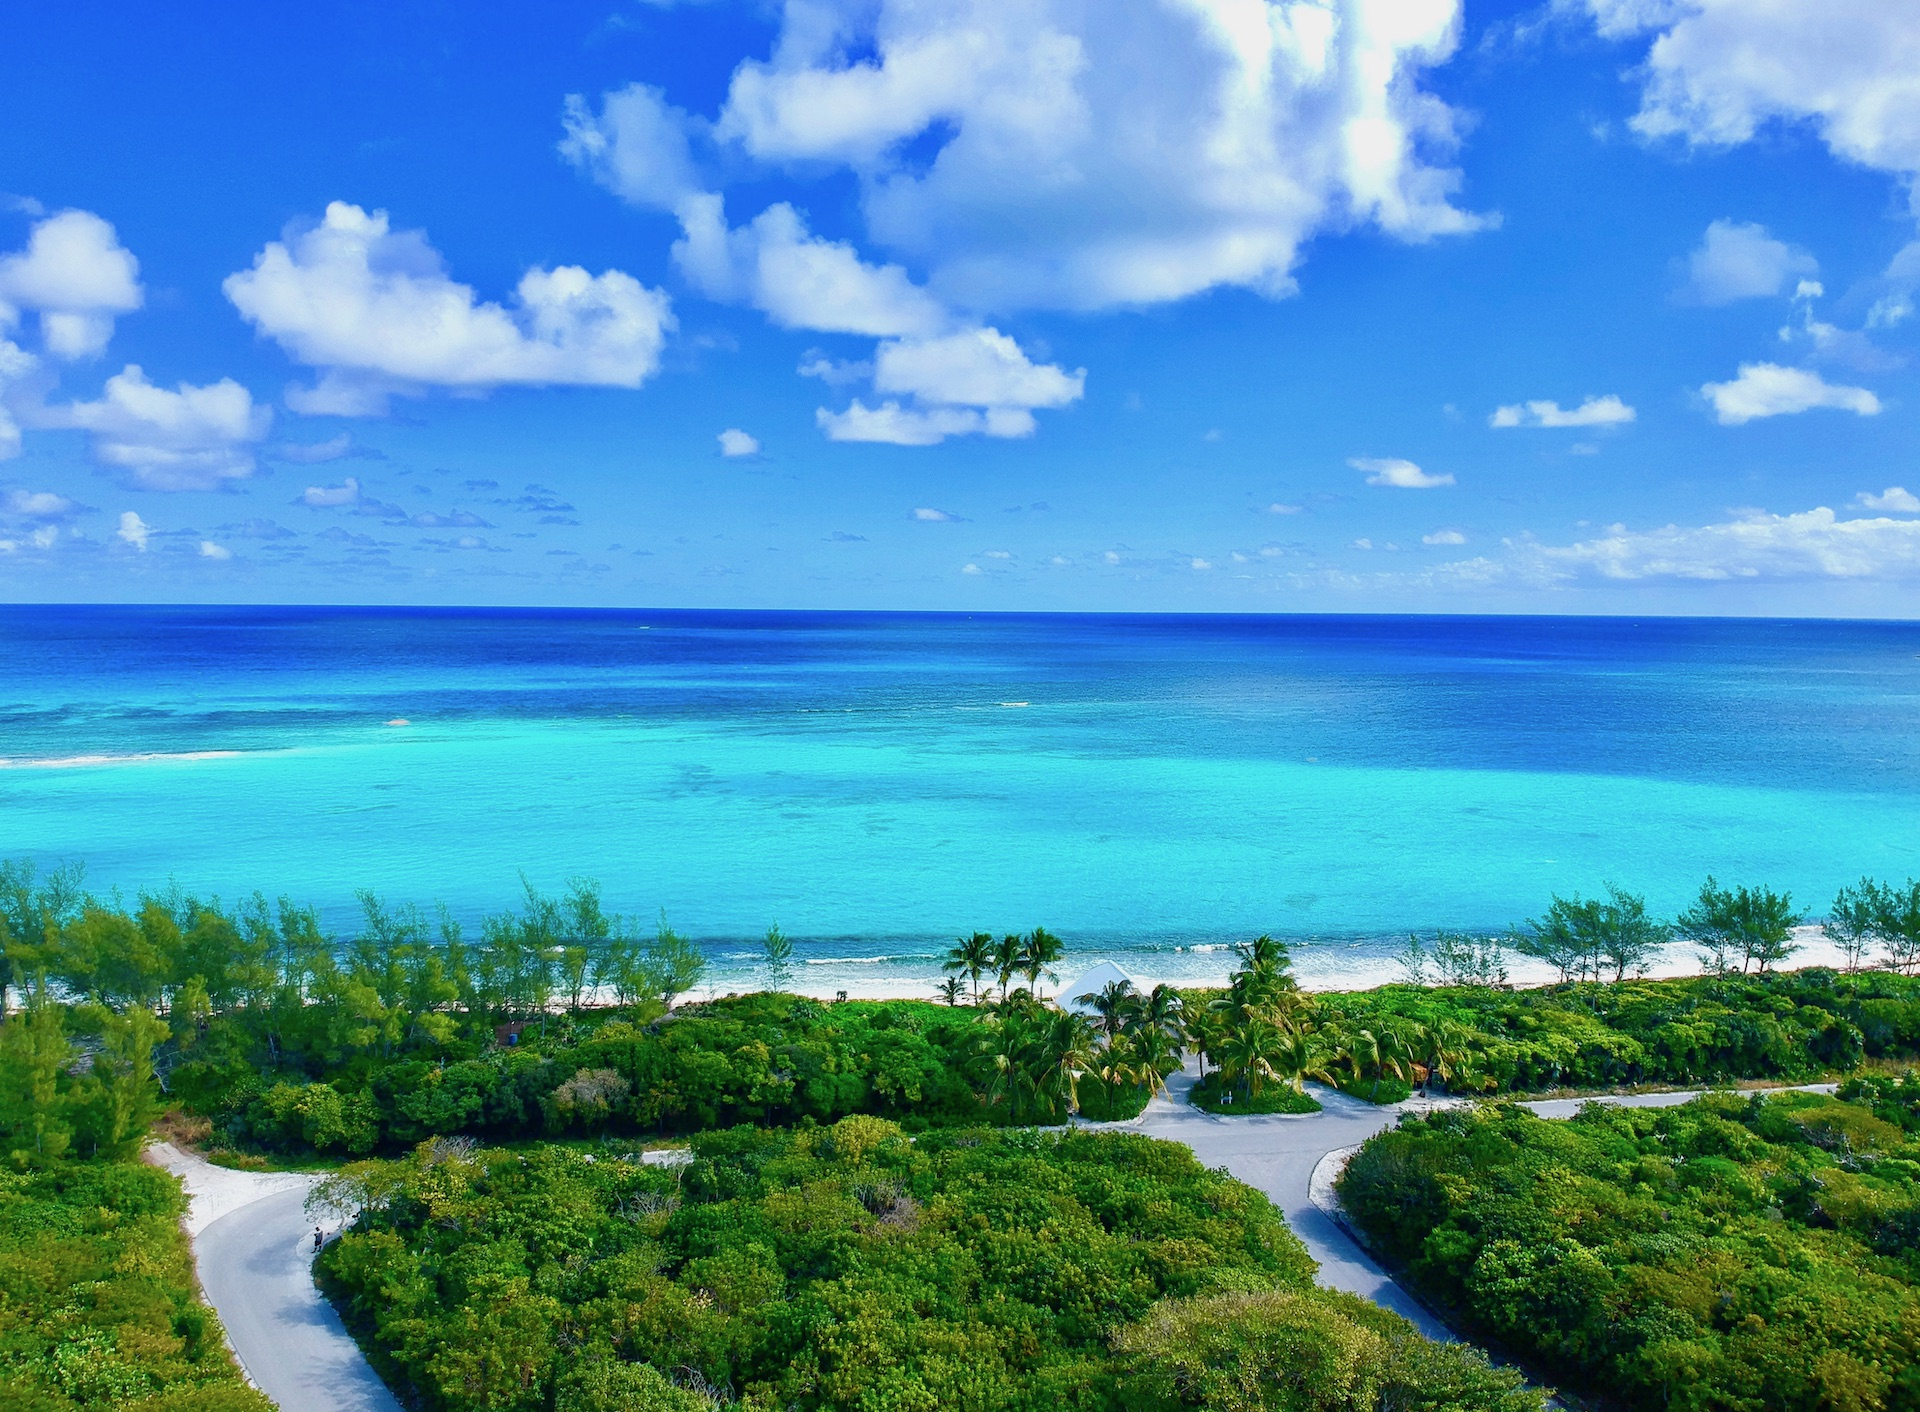 Property for sale in Abaco